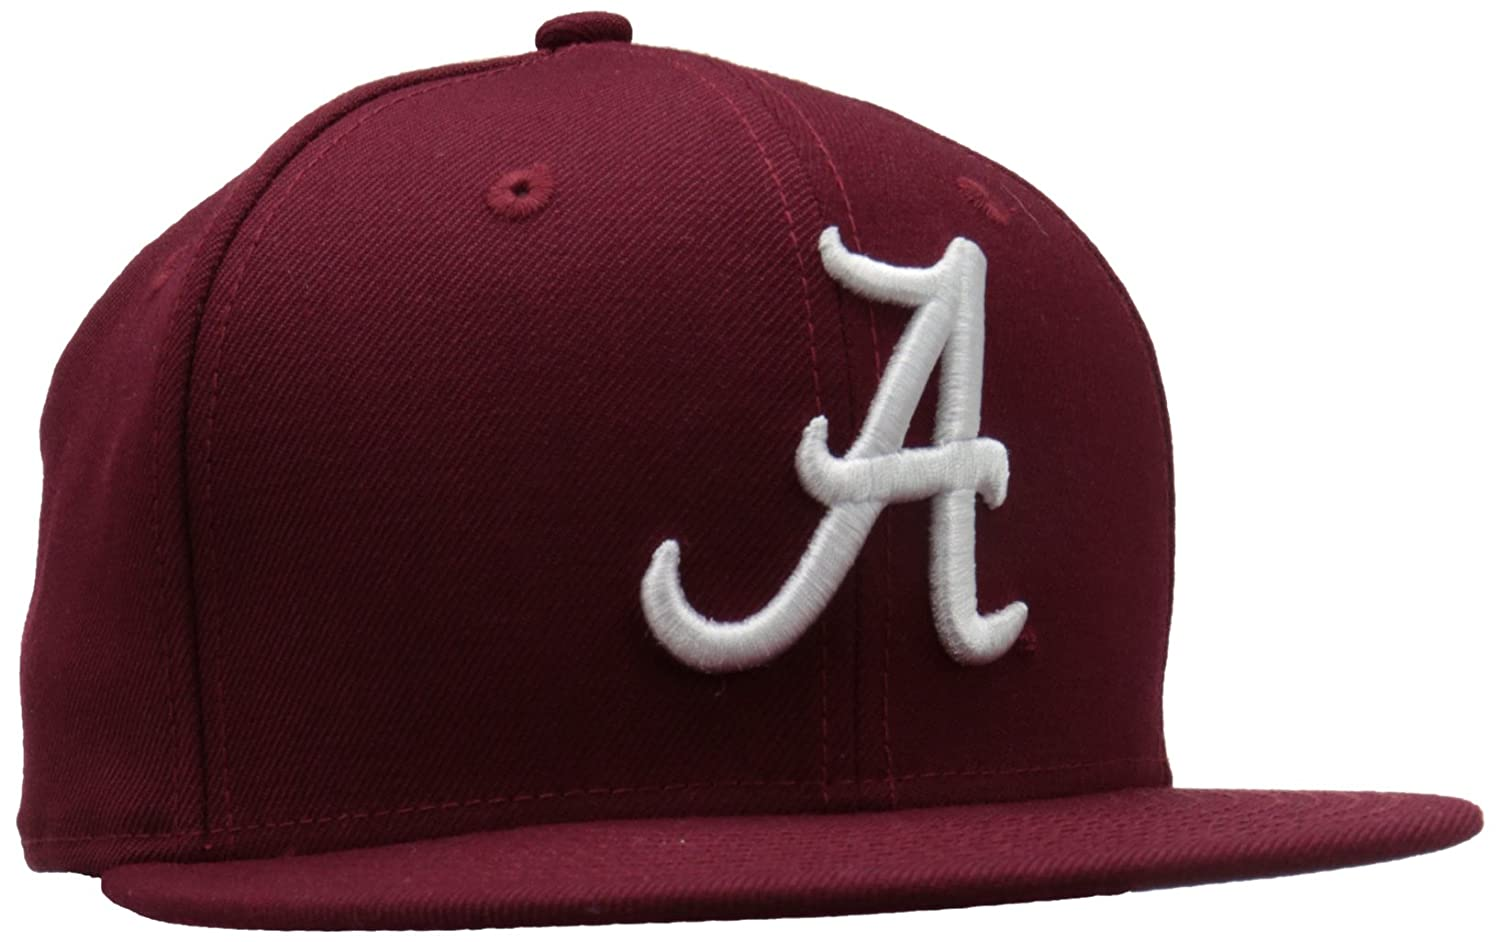 premium selection d3c6f 9c60a Amazon.com   New Era NCAA College Basic 59FIFTY Fitted Cap   Sports    Outdoors